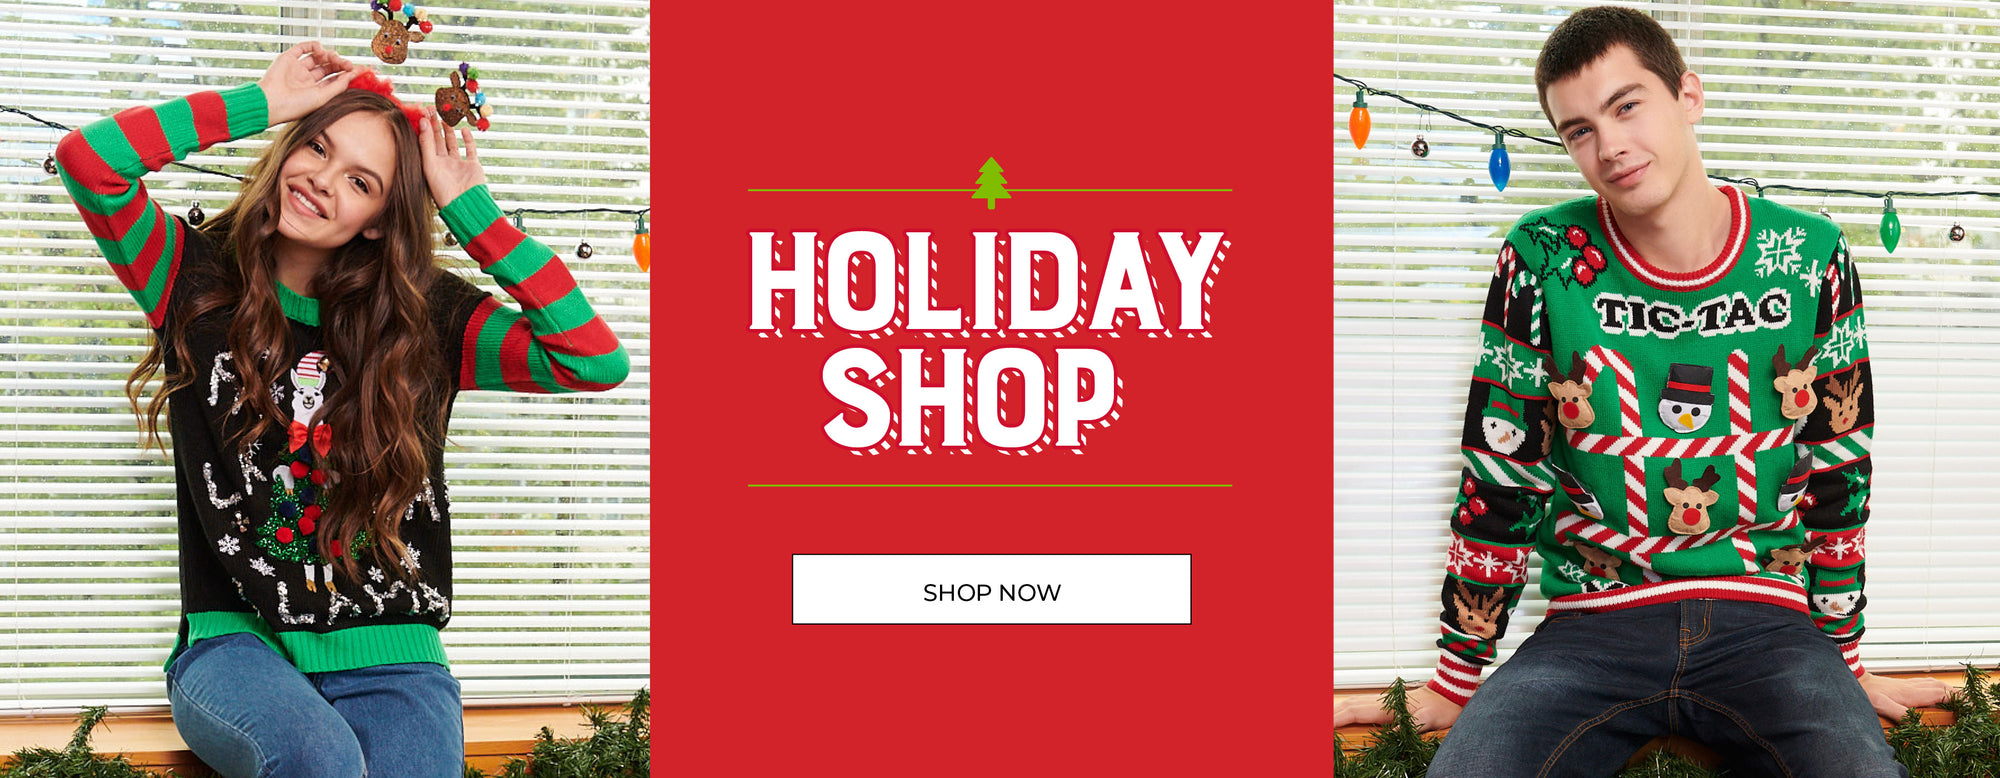 Stitches | The Holiday Shop - Shop Now